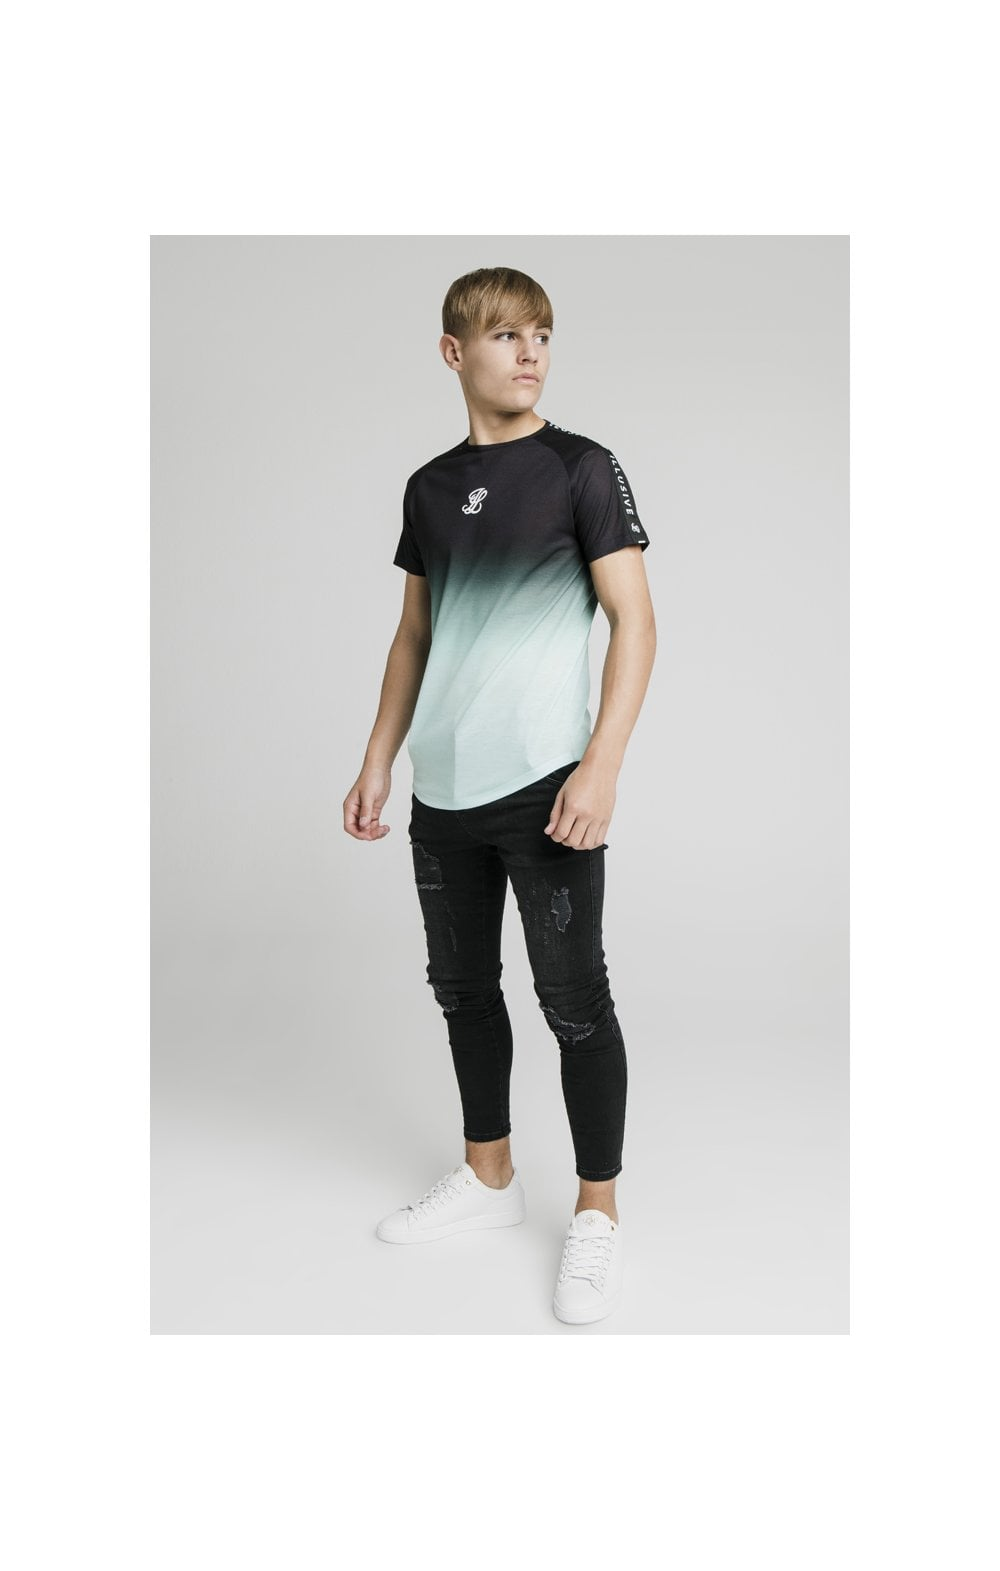 Illusive London Tape Fade Logo Tee - Black & Mint (1)